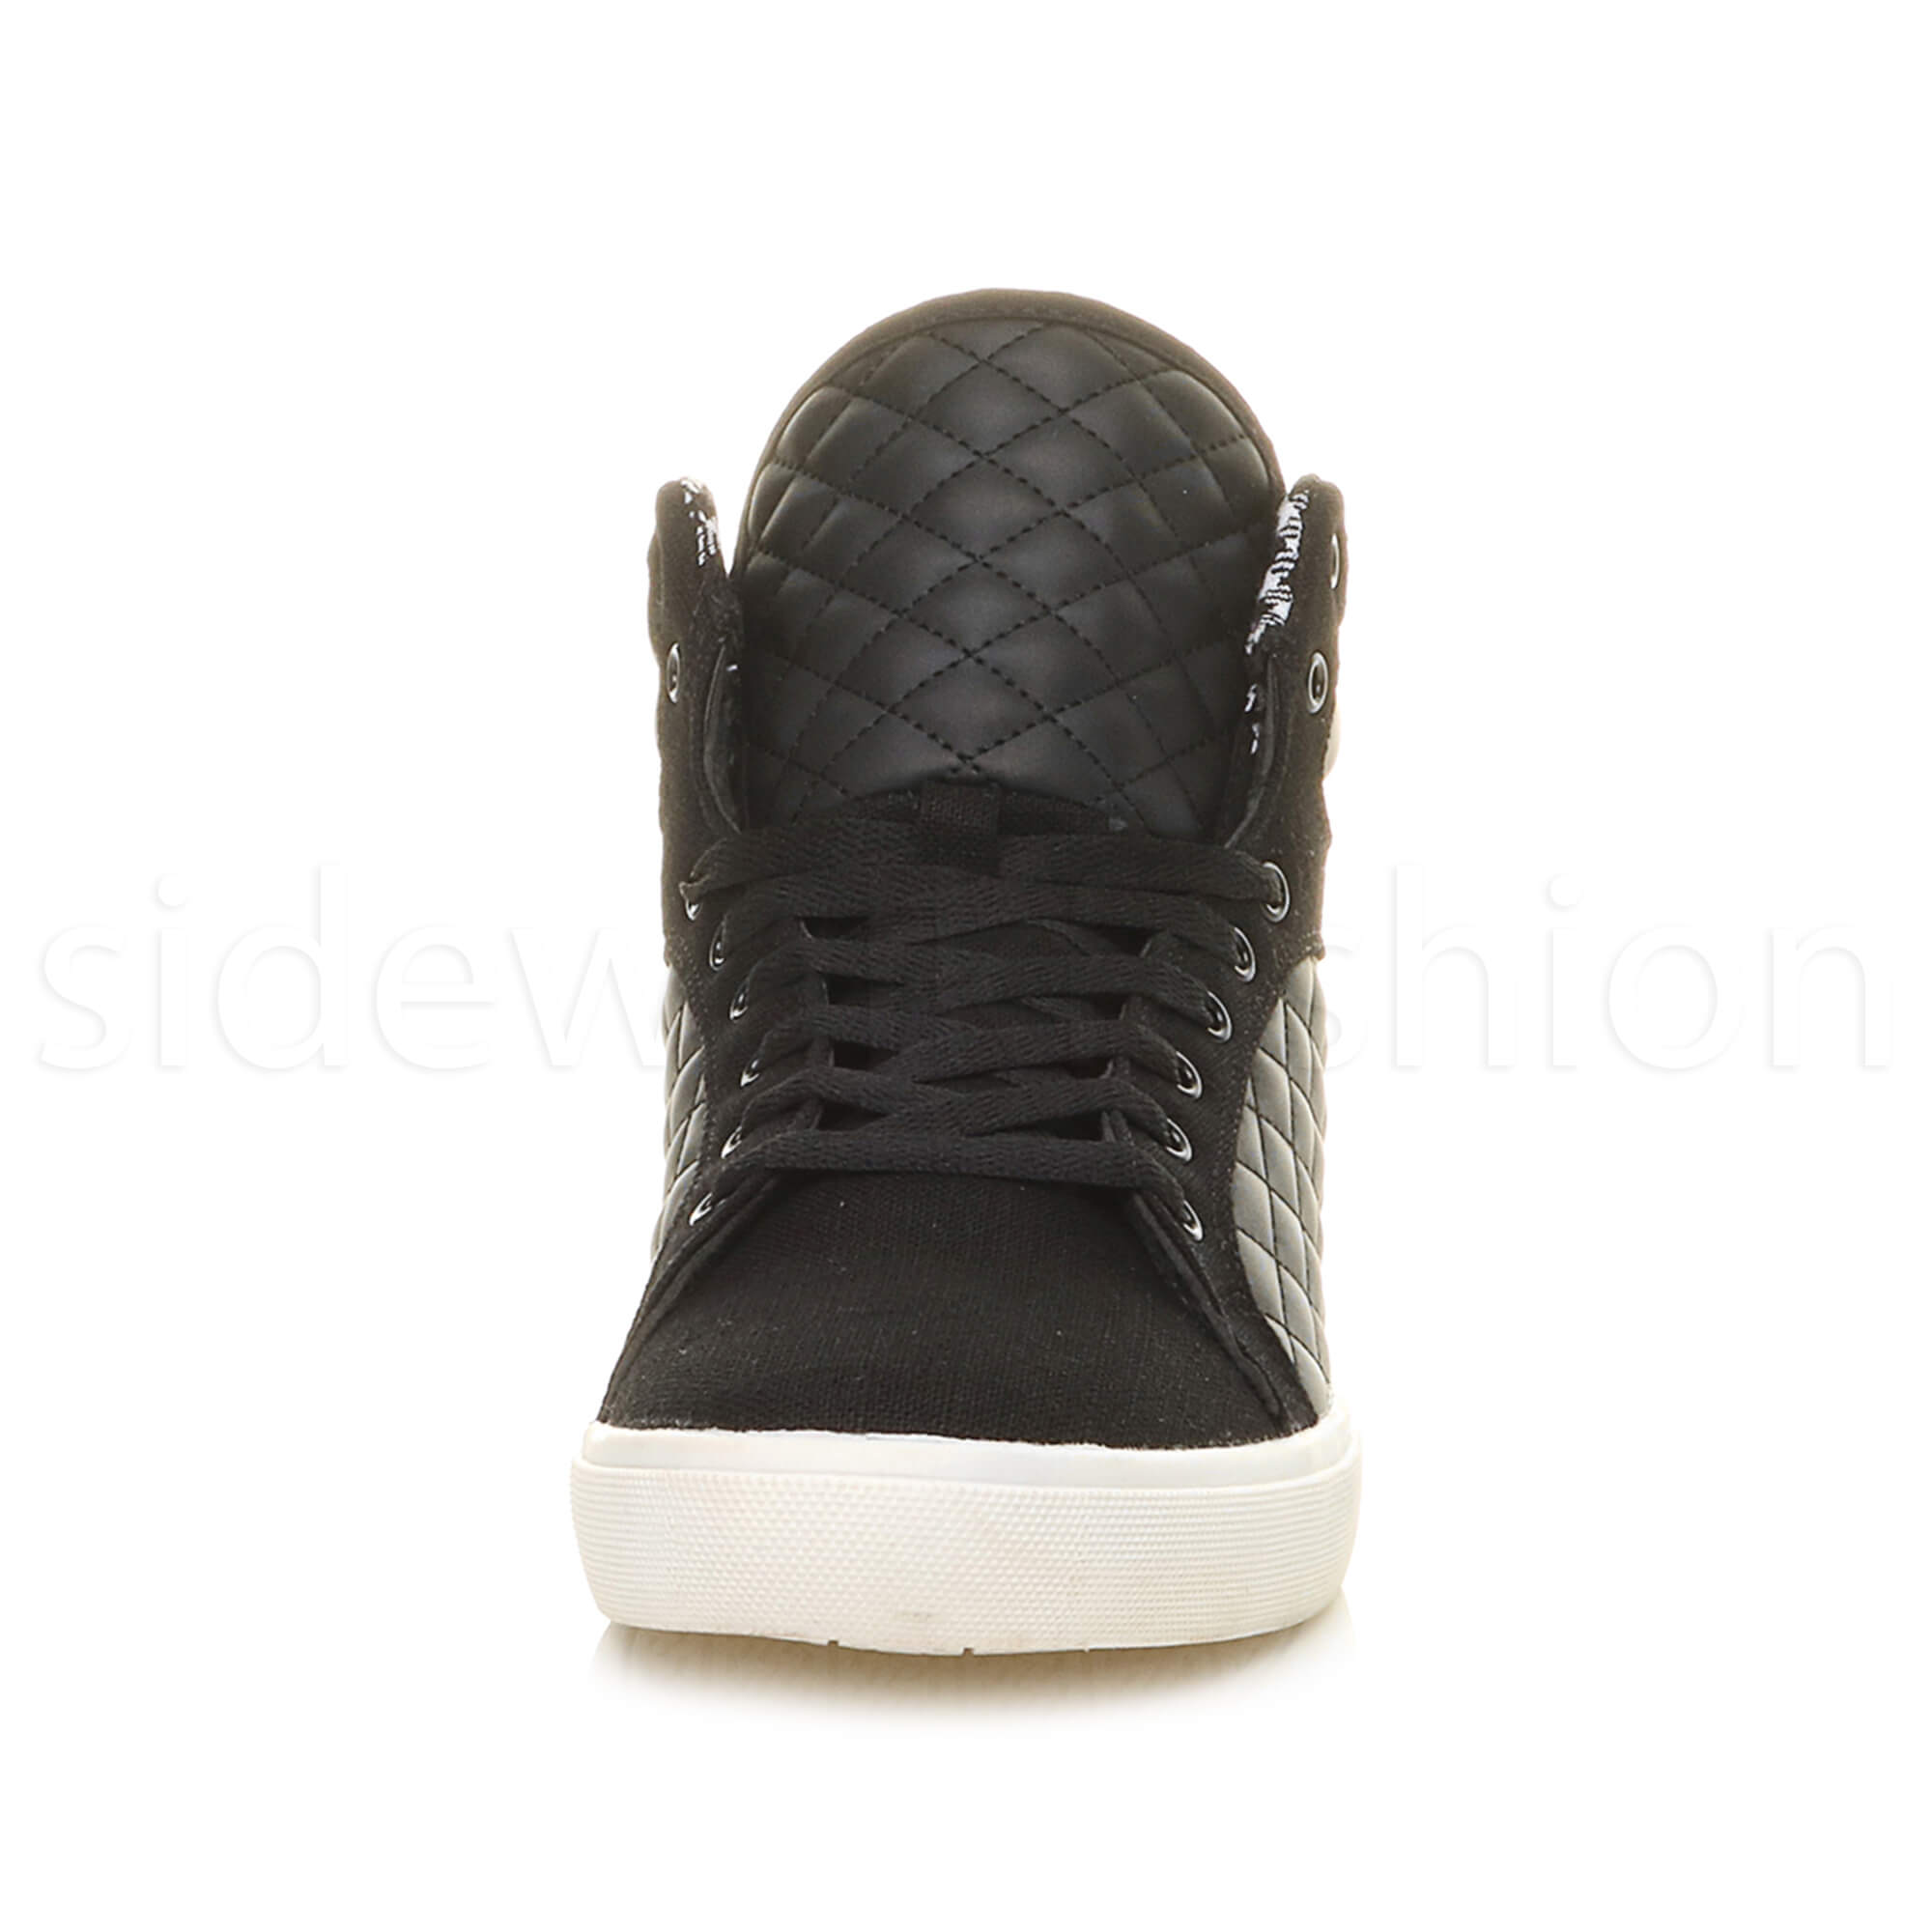 Mens-flat-lace-up-quilted-casual-hi-high-top-ankle-boots-trainers-sneakers-size thumbnail 7